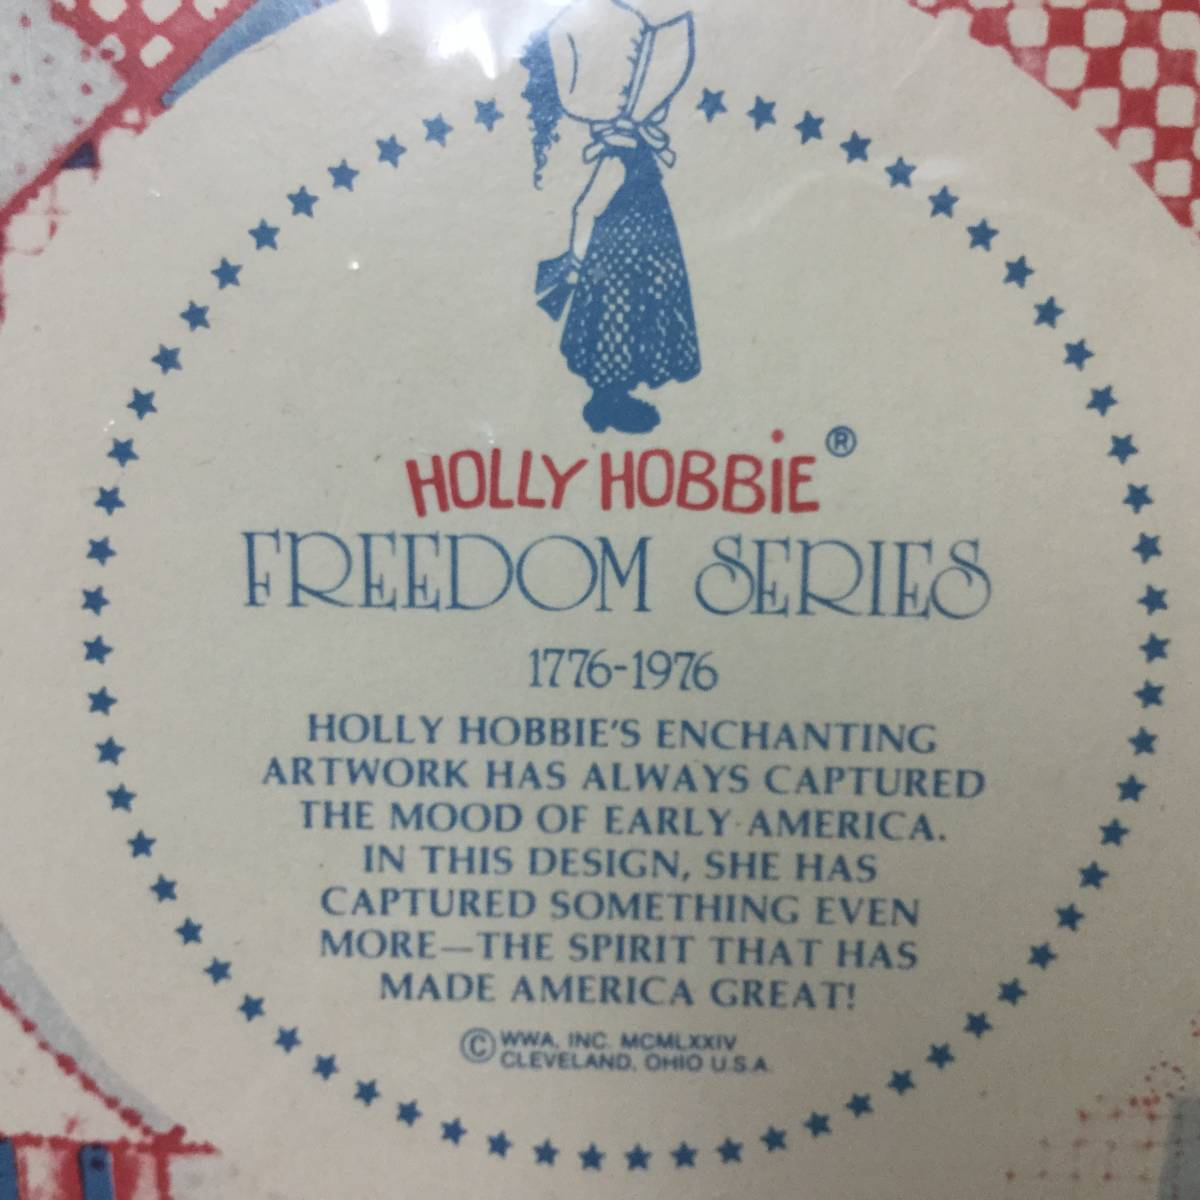 ■ARTBOOK_OUTLET■ 62-049 ★ 未開封 ホーリーホビー ヴィンテージ コレクター プレート 1974年 HOLLY HOBBIE VINTAGE COLLECTOR PLATE 3_画像3